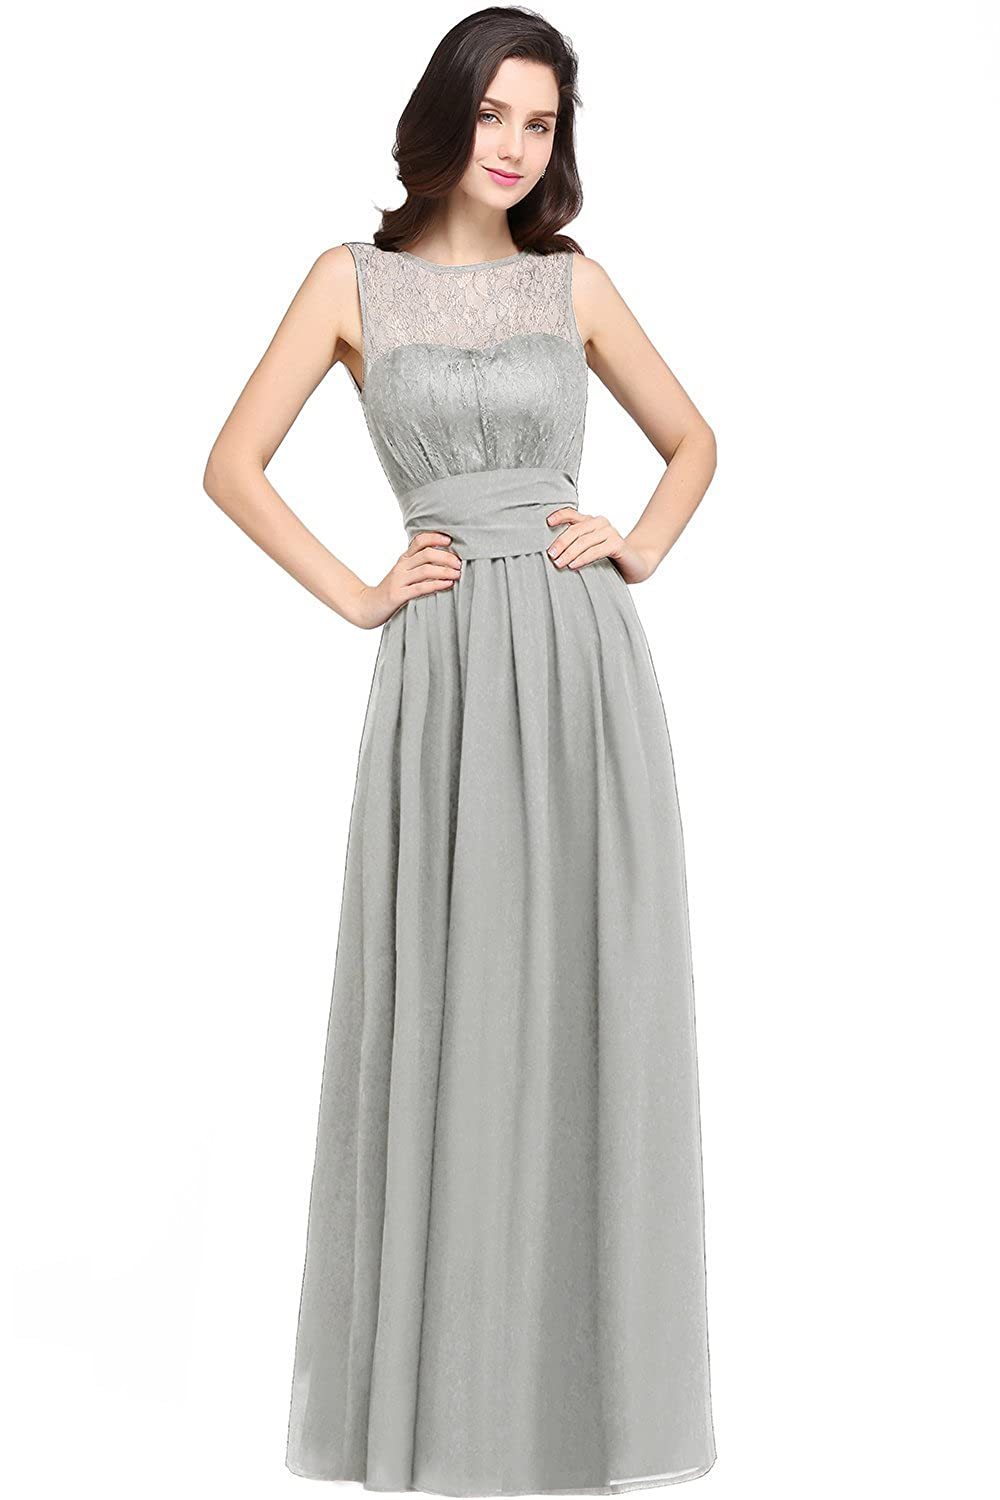 37f2542c55 Babyonlinedress Sleeveless Slim Lace Chiffon Silver Bridesmaid  Dress,Silver,8